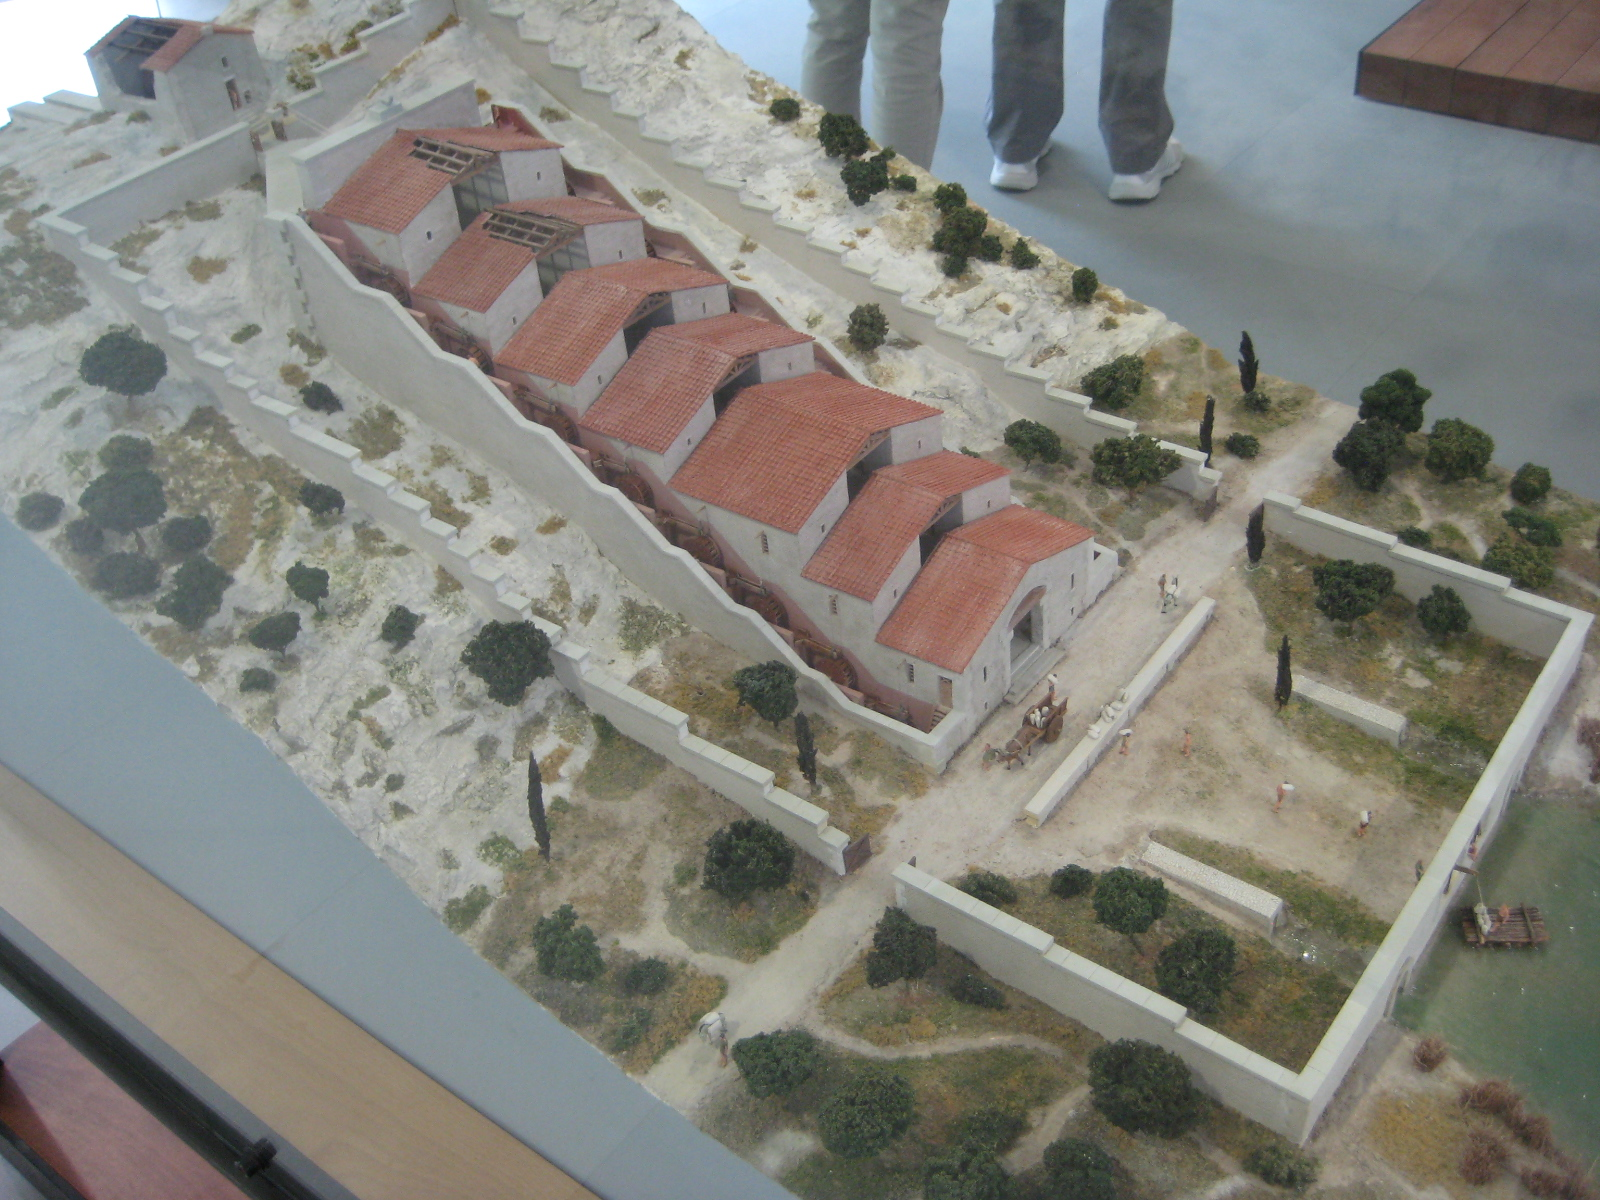 Model of the Barbegal watermill complex